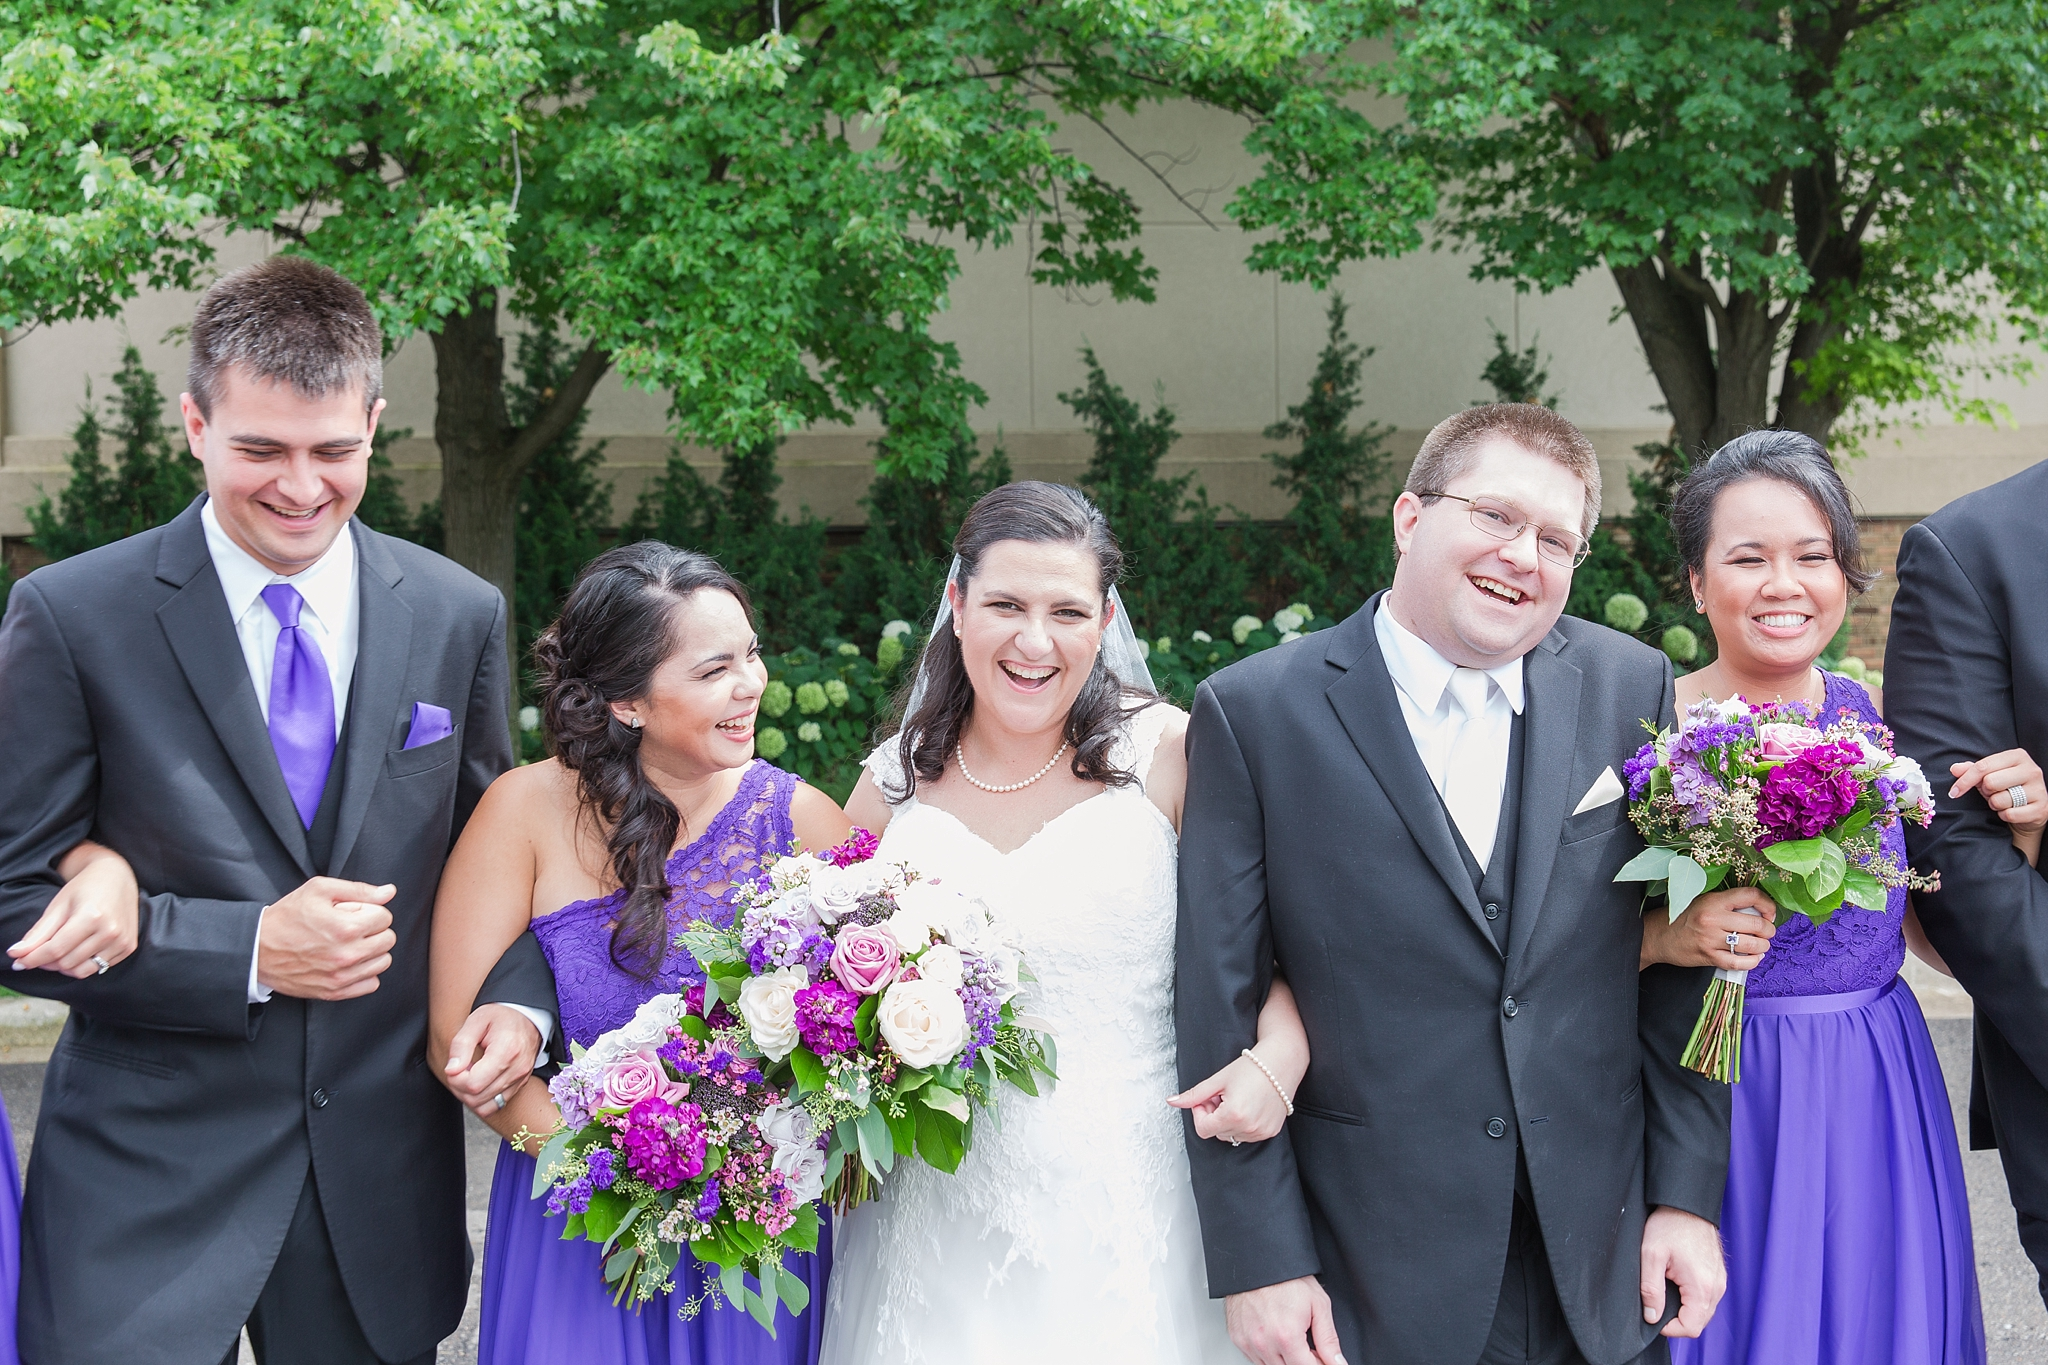 romantic-artful-candid-wedding-photos-in-detroit-lansing-ann-arbor-northern-michigan-and-chicago-by-courtney-carolyn-photography_0052.jpg